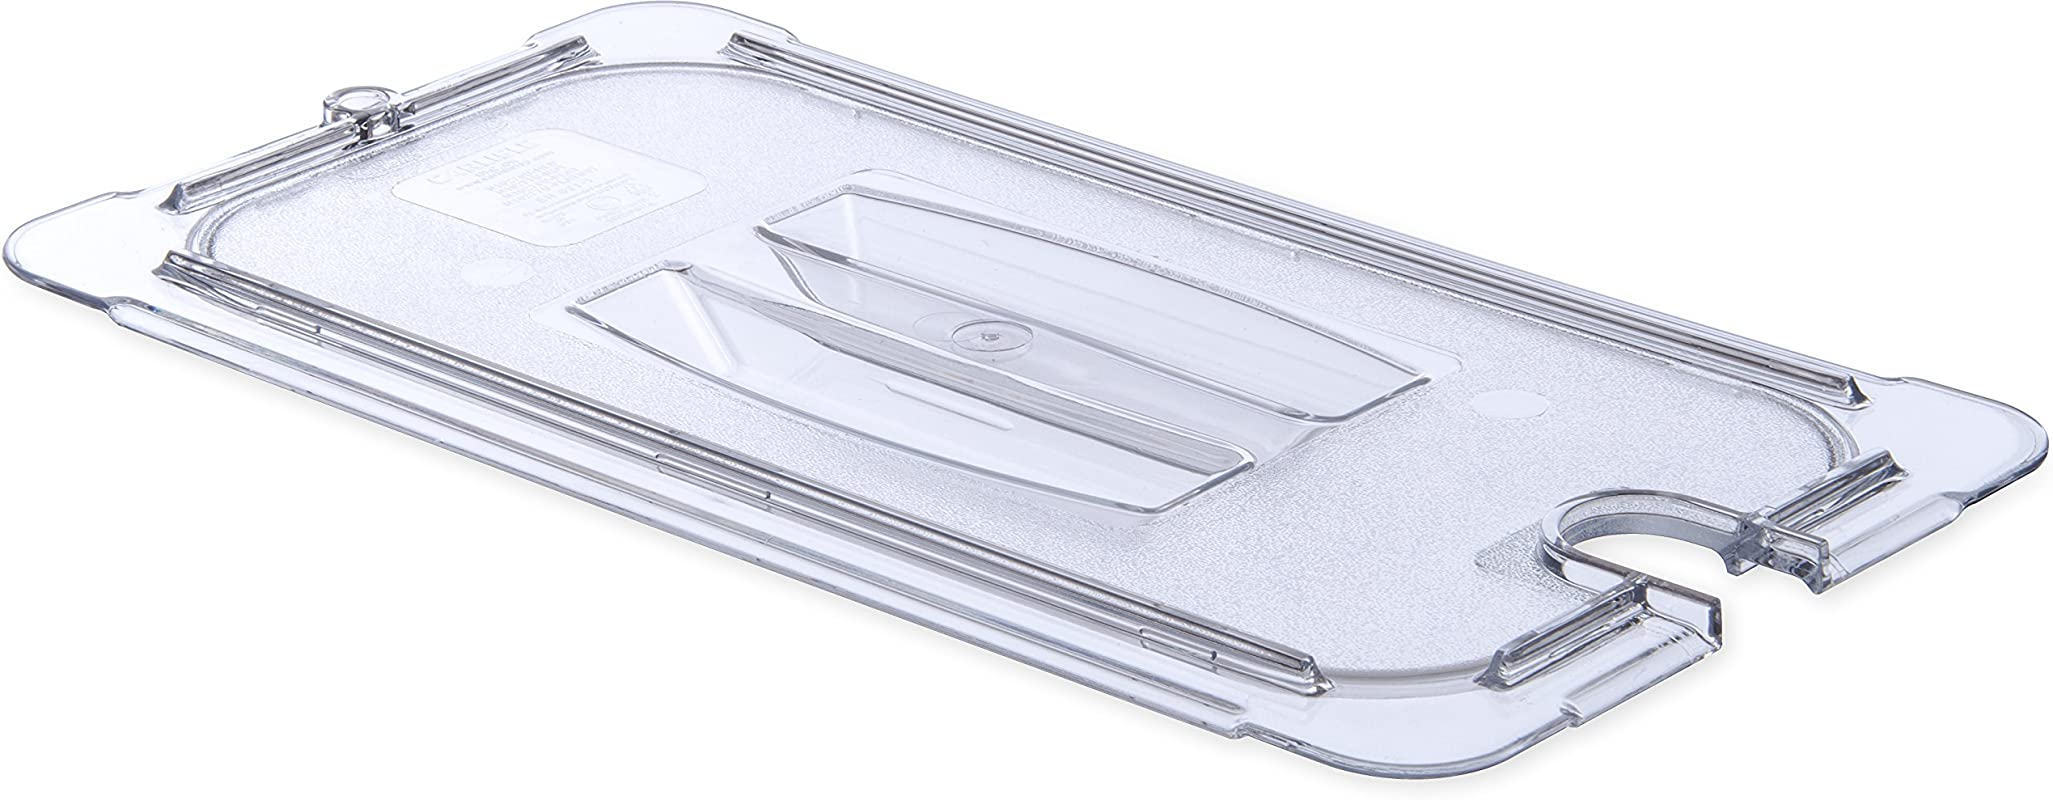 Carlisle 10271U07 StorPlus Third Size Polycarbonate Universal Handled Notched Food Pan Lid Clear